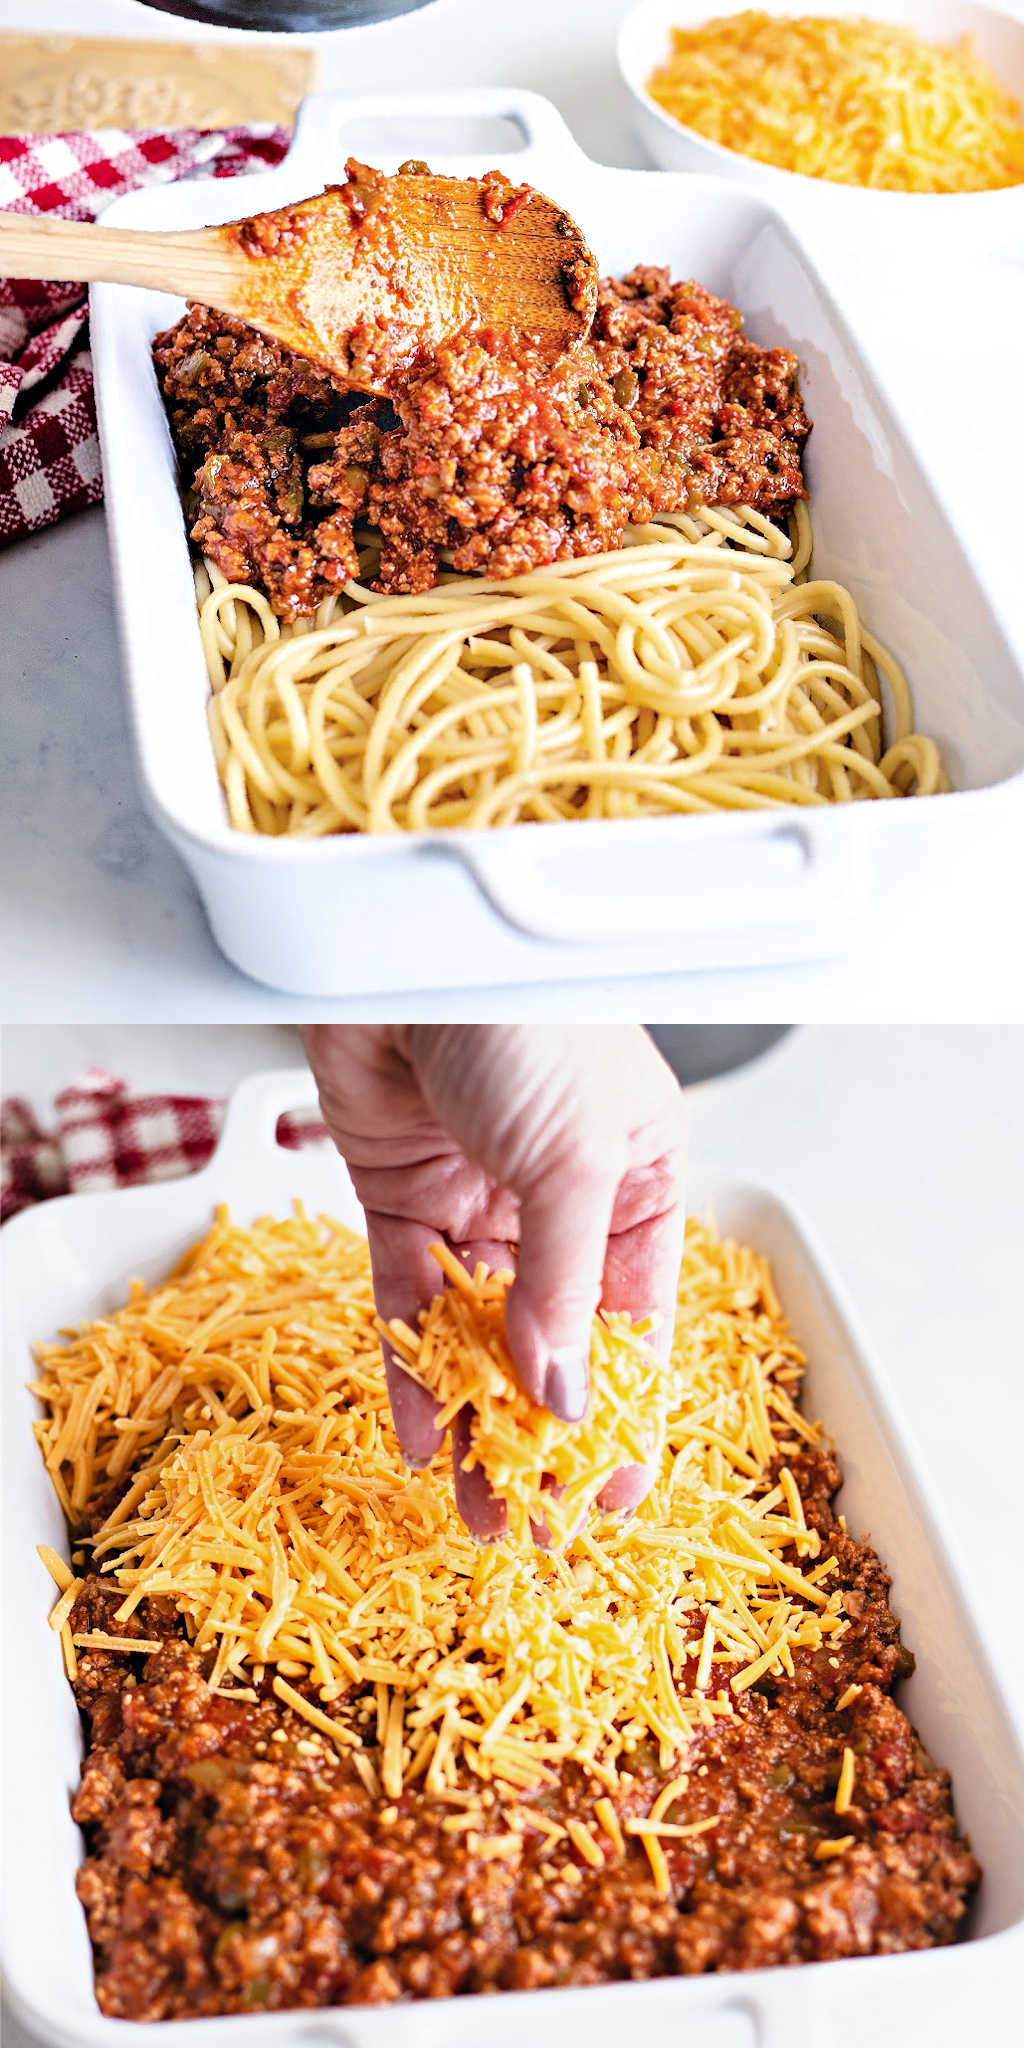 layering sauce and cheese on top of spaghetti in a casserole dish for baked spaghetti.